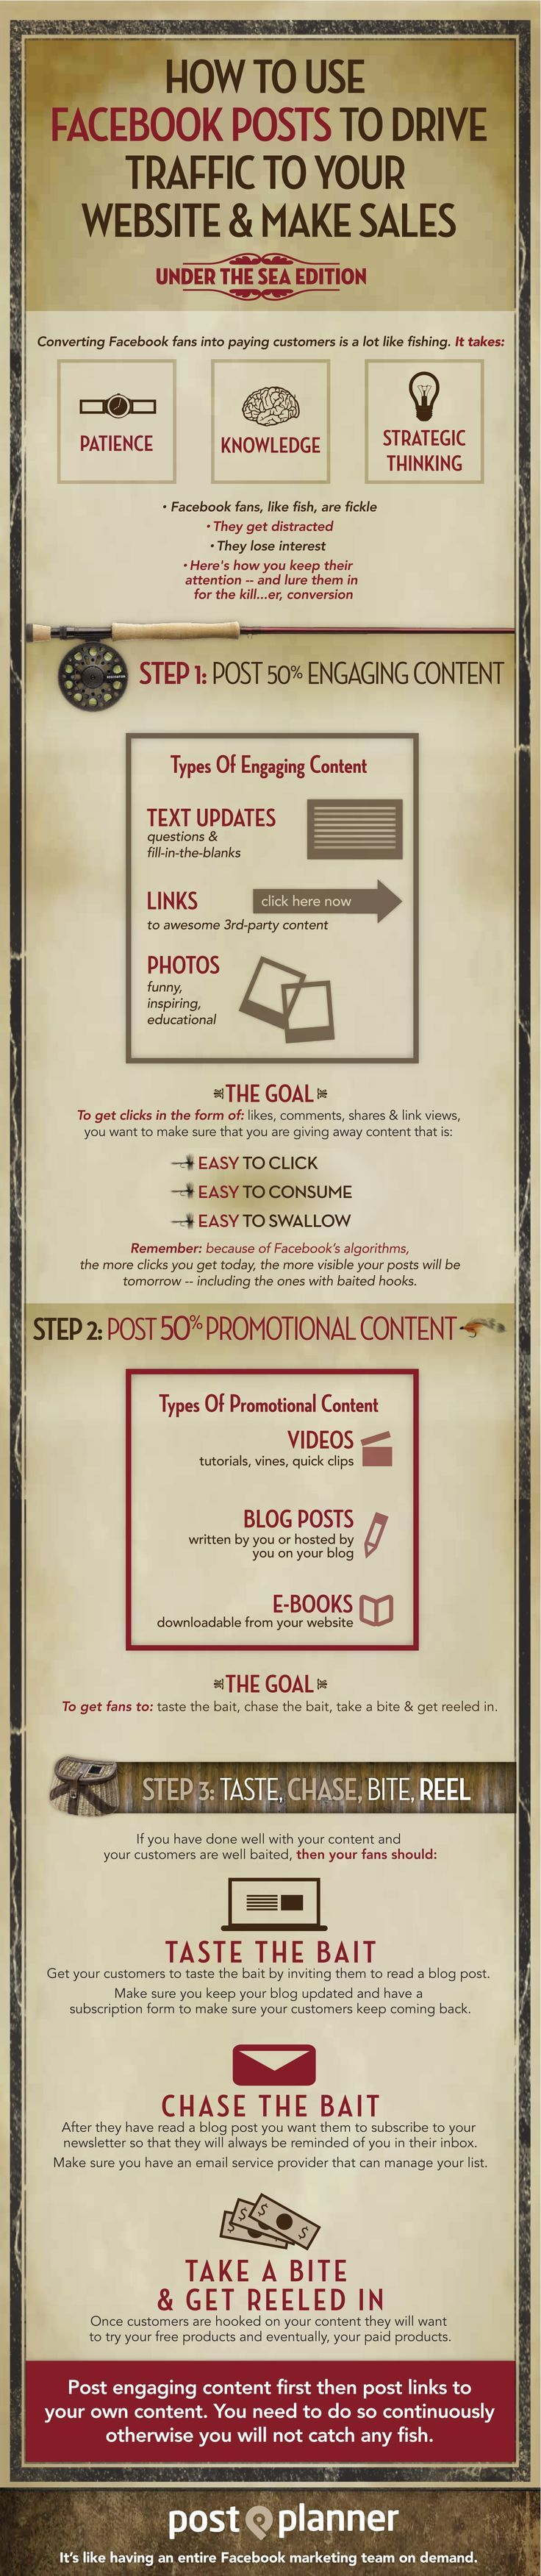 How To Use Facebook Posts To Drive Traffic To Your Website And Make Sales [infographic] via @Lize De Clercq